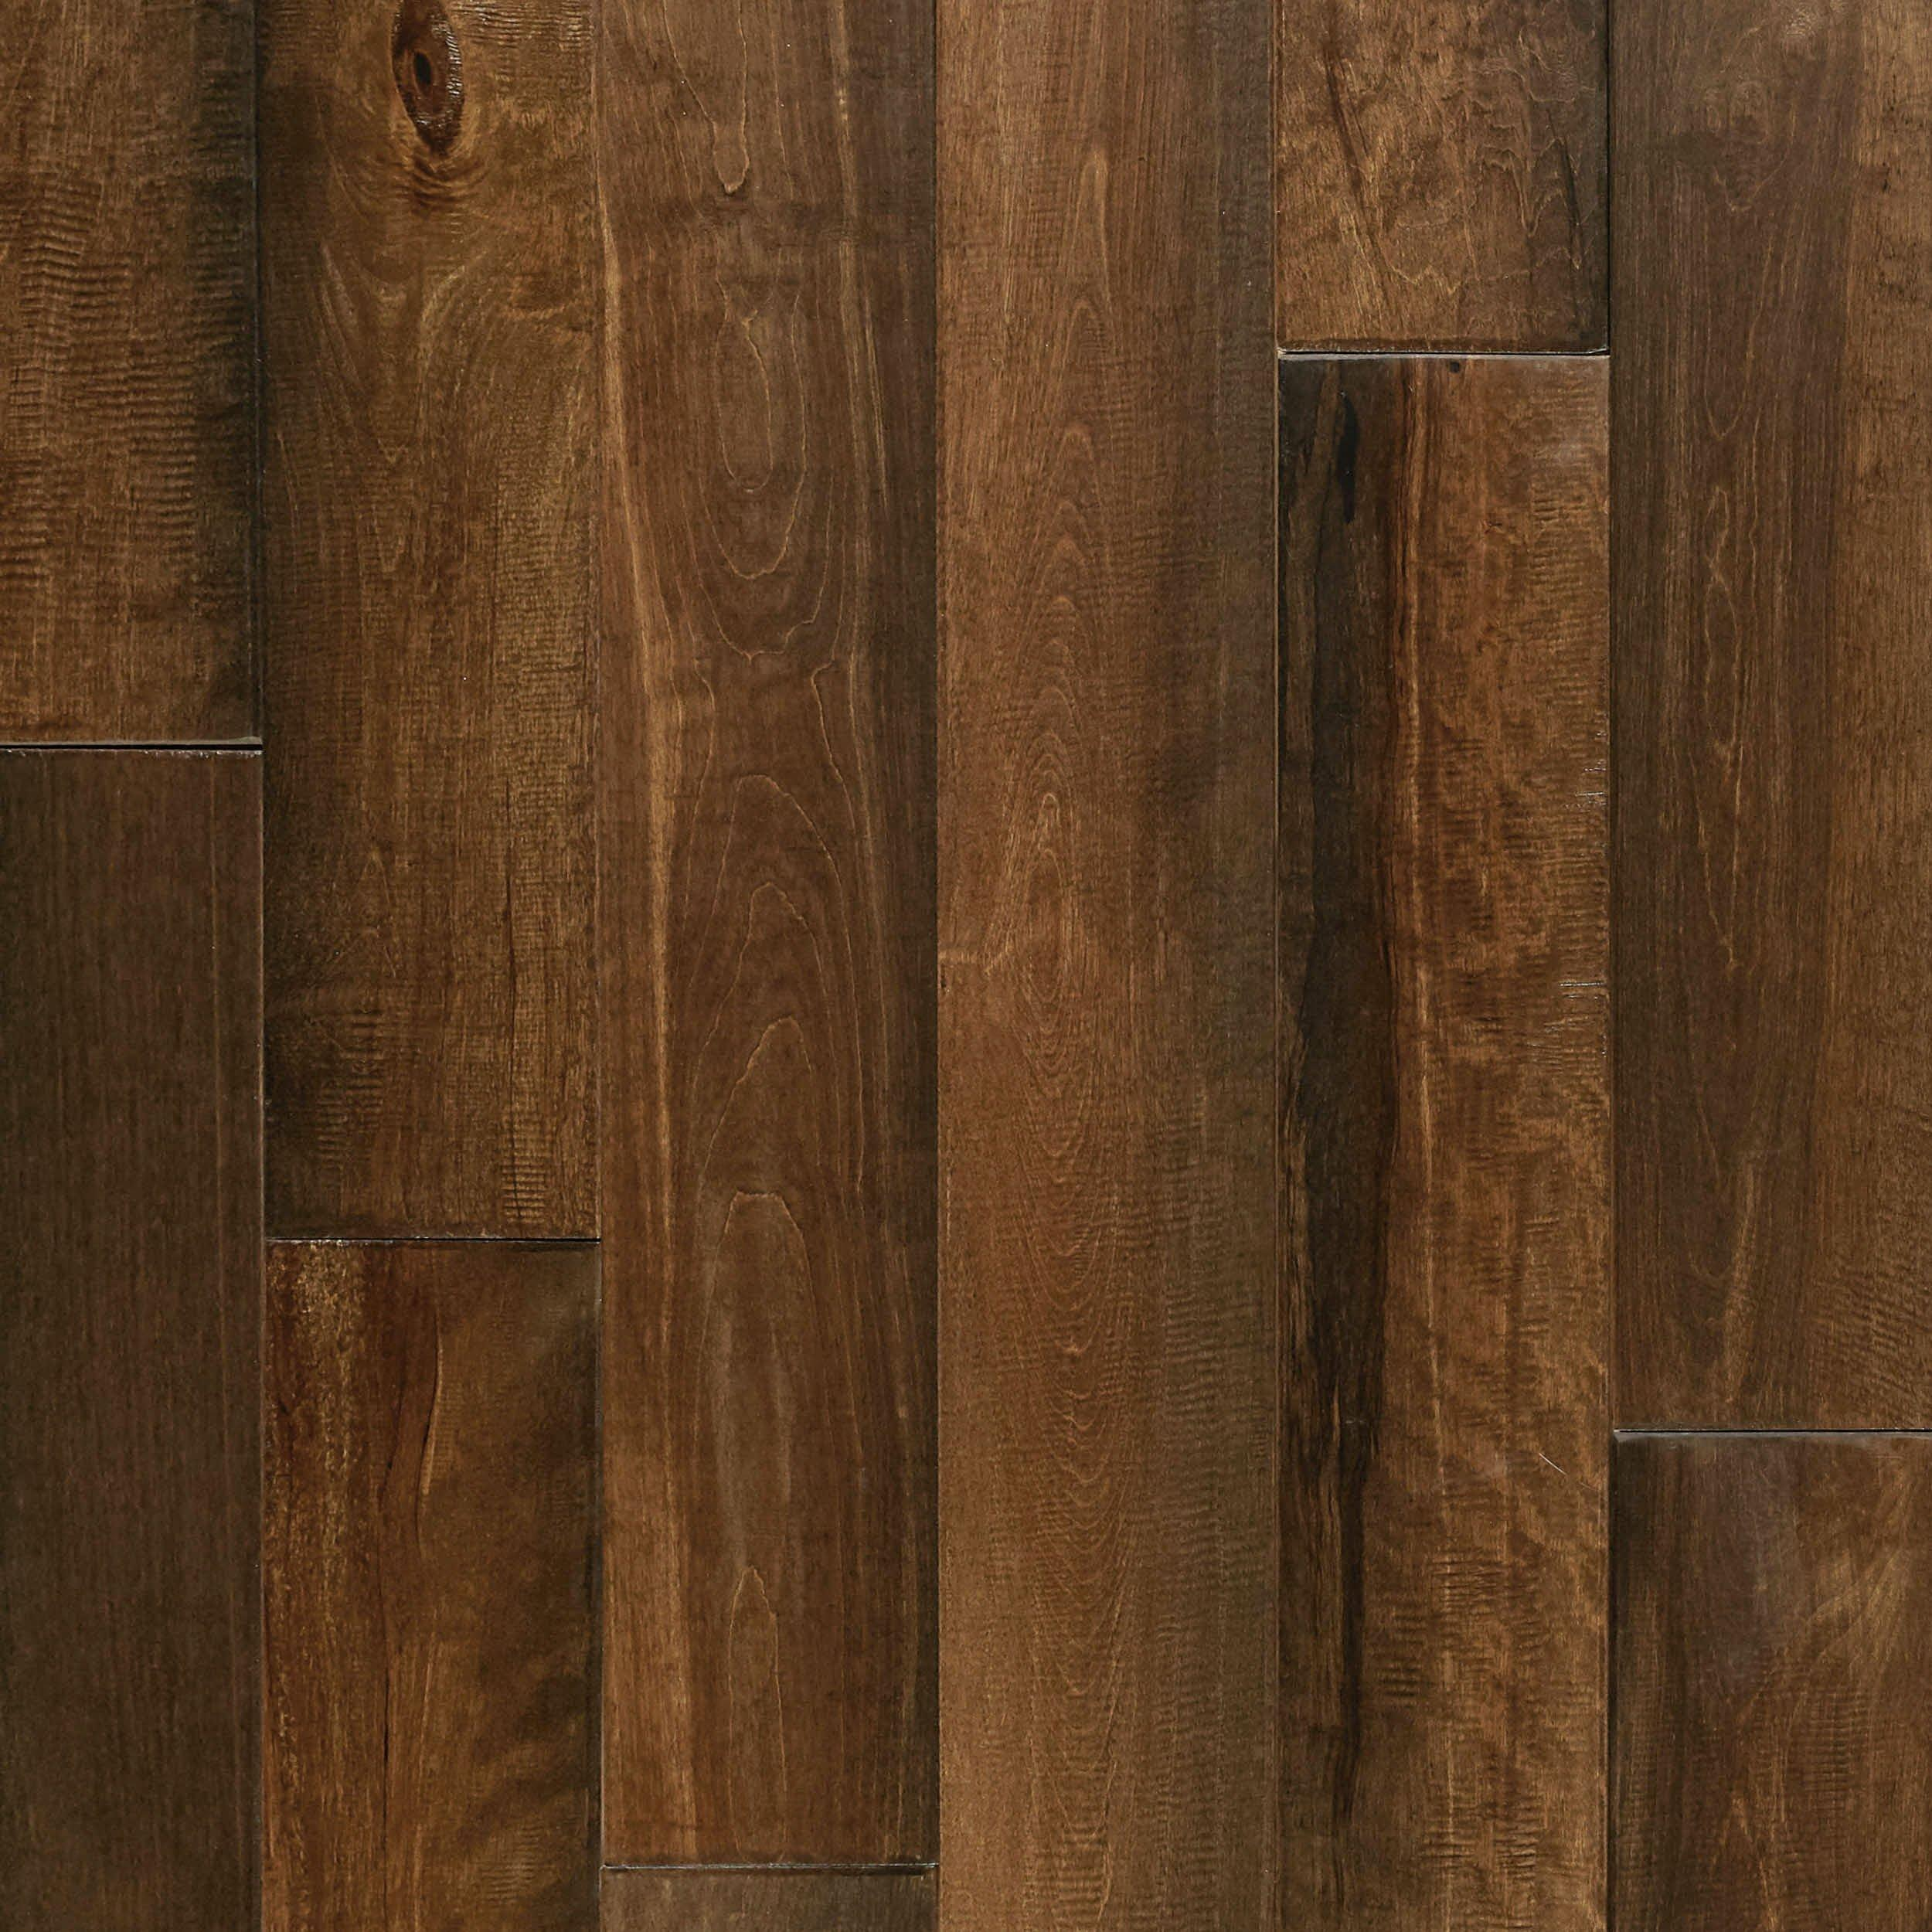 cyrus brown birch hand scraped wire brushed solid hardwood 34in x 4 34in floor and decor